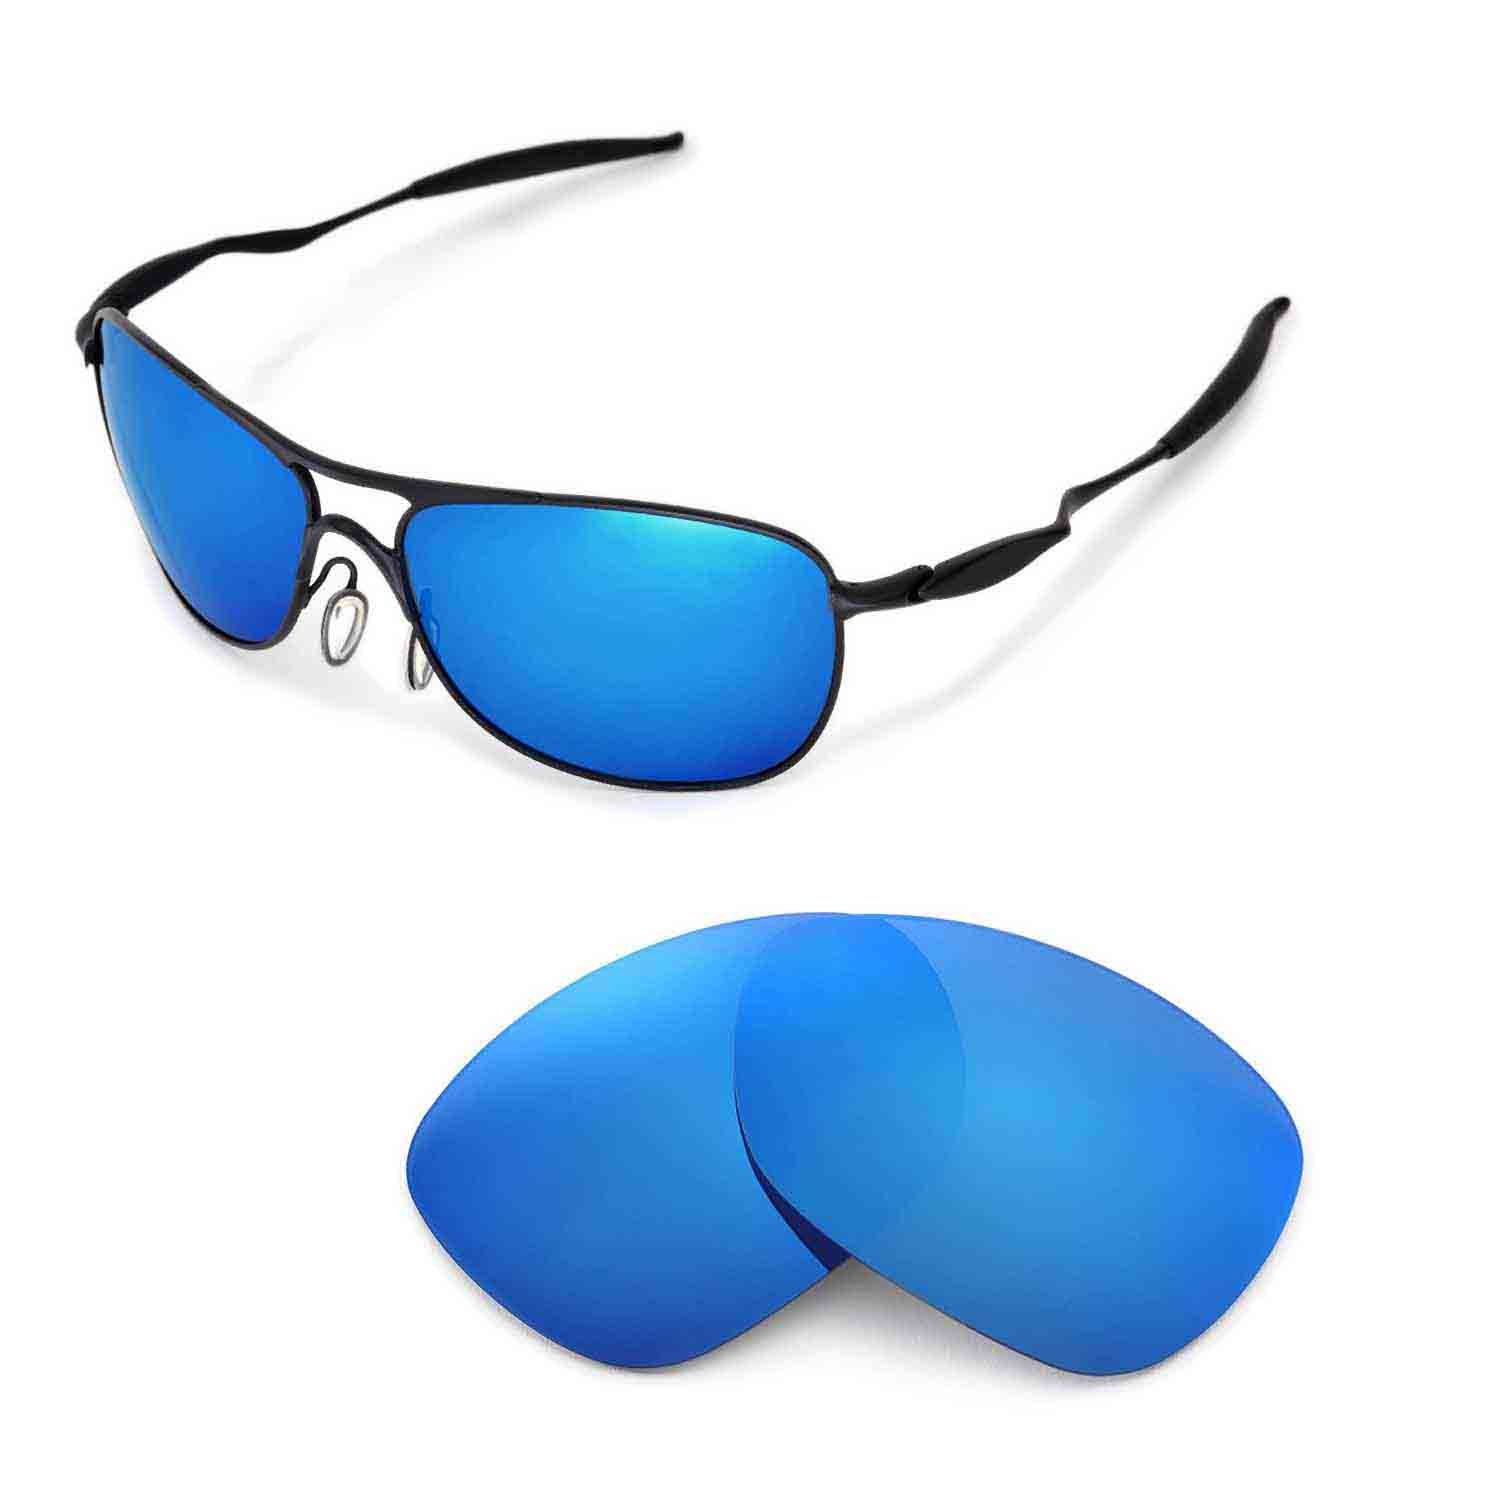 4e3f31a9a9c Walleva Replacement Lenses for Oakley Crosshair (2012 or later) Sunglasses  - Multiple Options (Ice Blue Coated - Polarized)  Amazon.ca  Sports    Outdoors